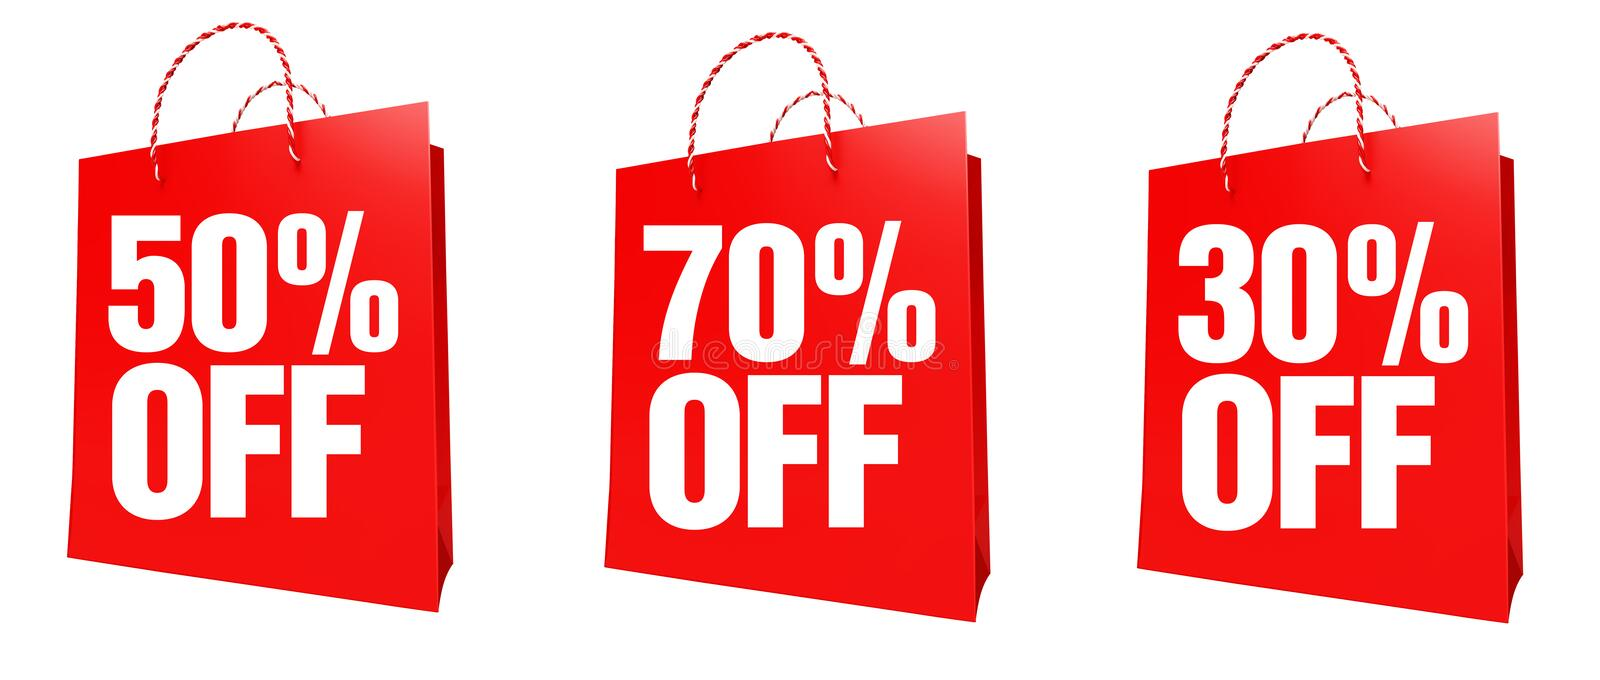 30-70 Percentage sign. Shopping bags with 30-70% percentage sign royalty free illustration